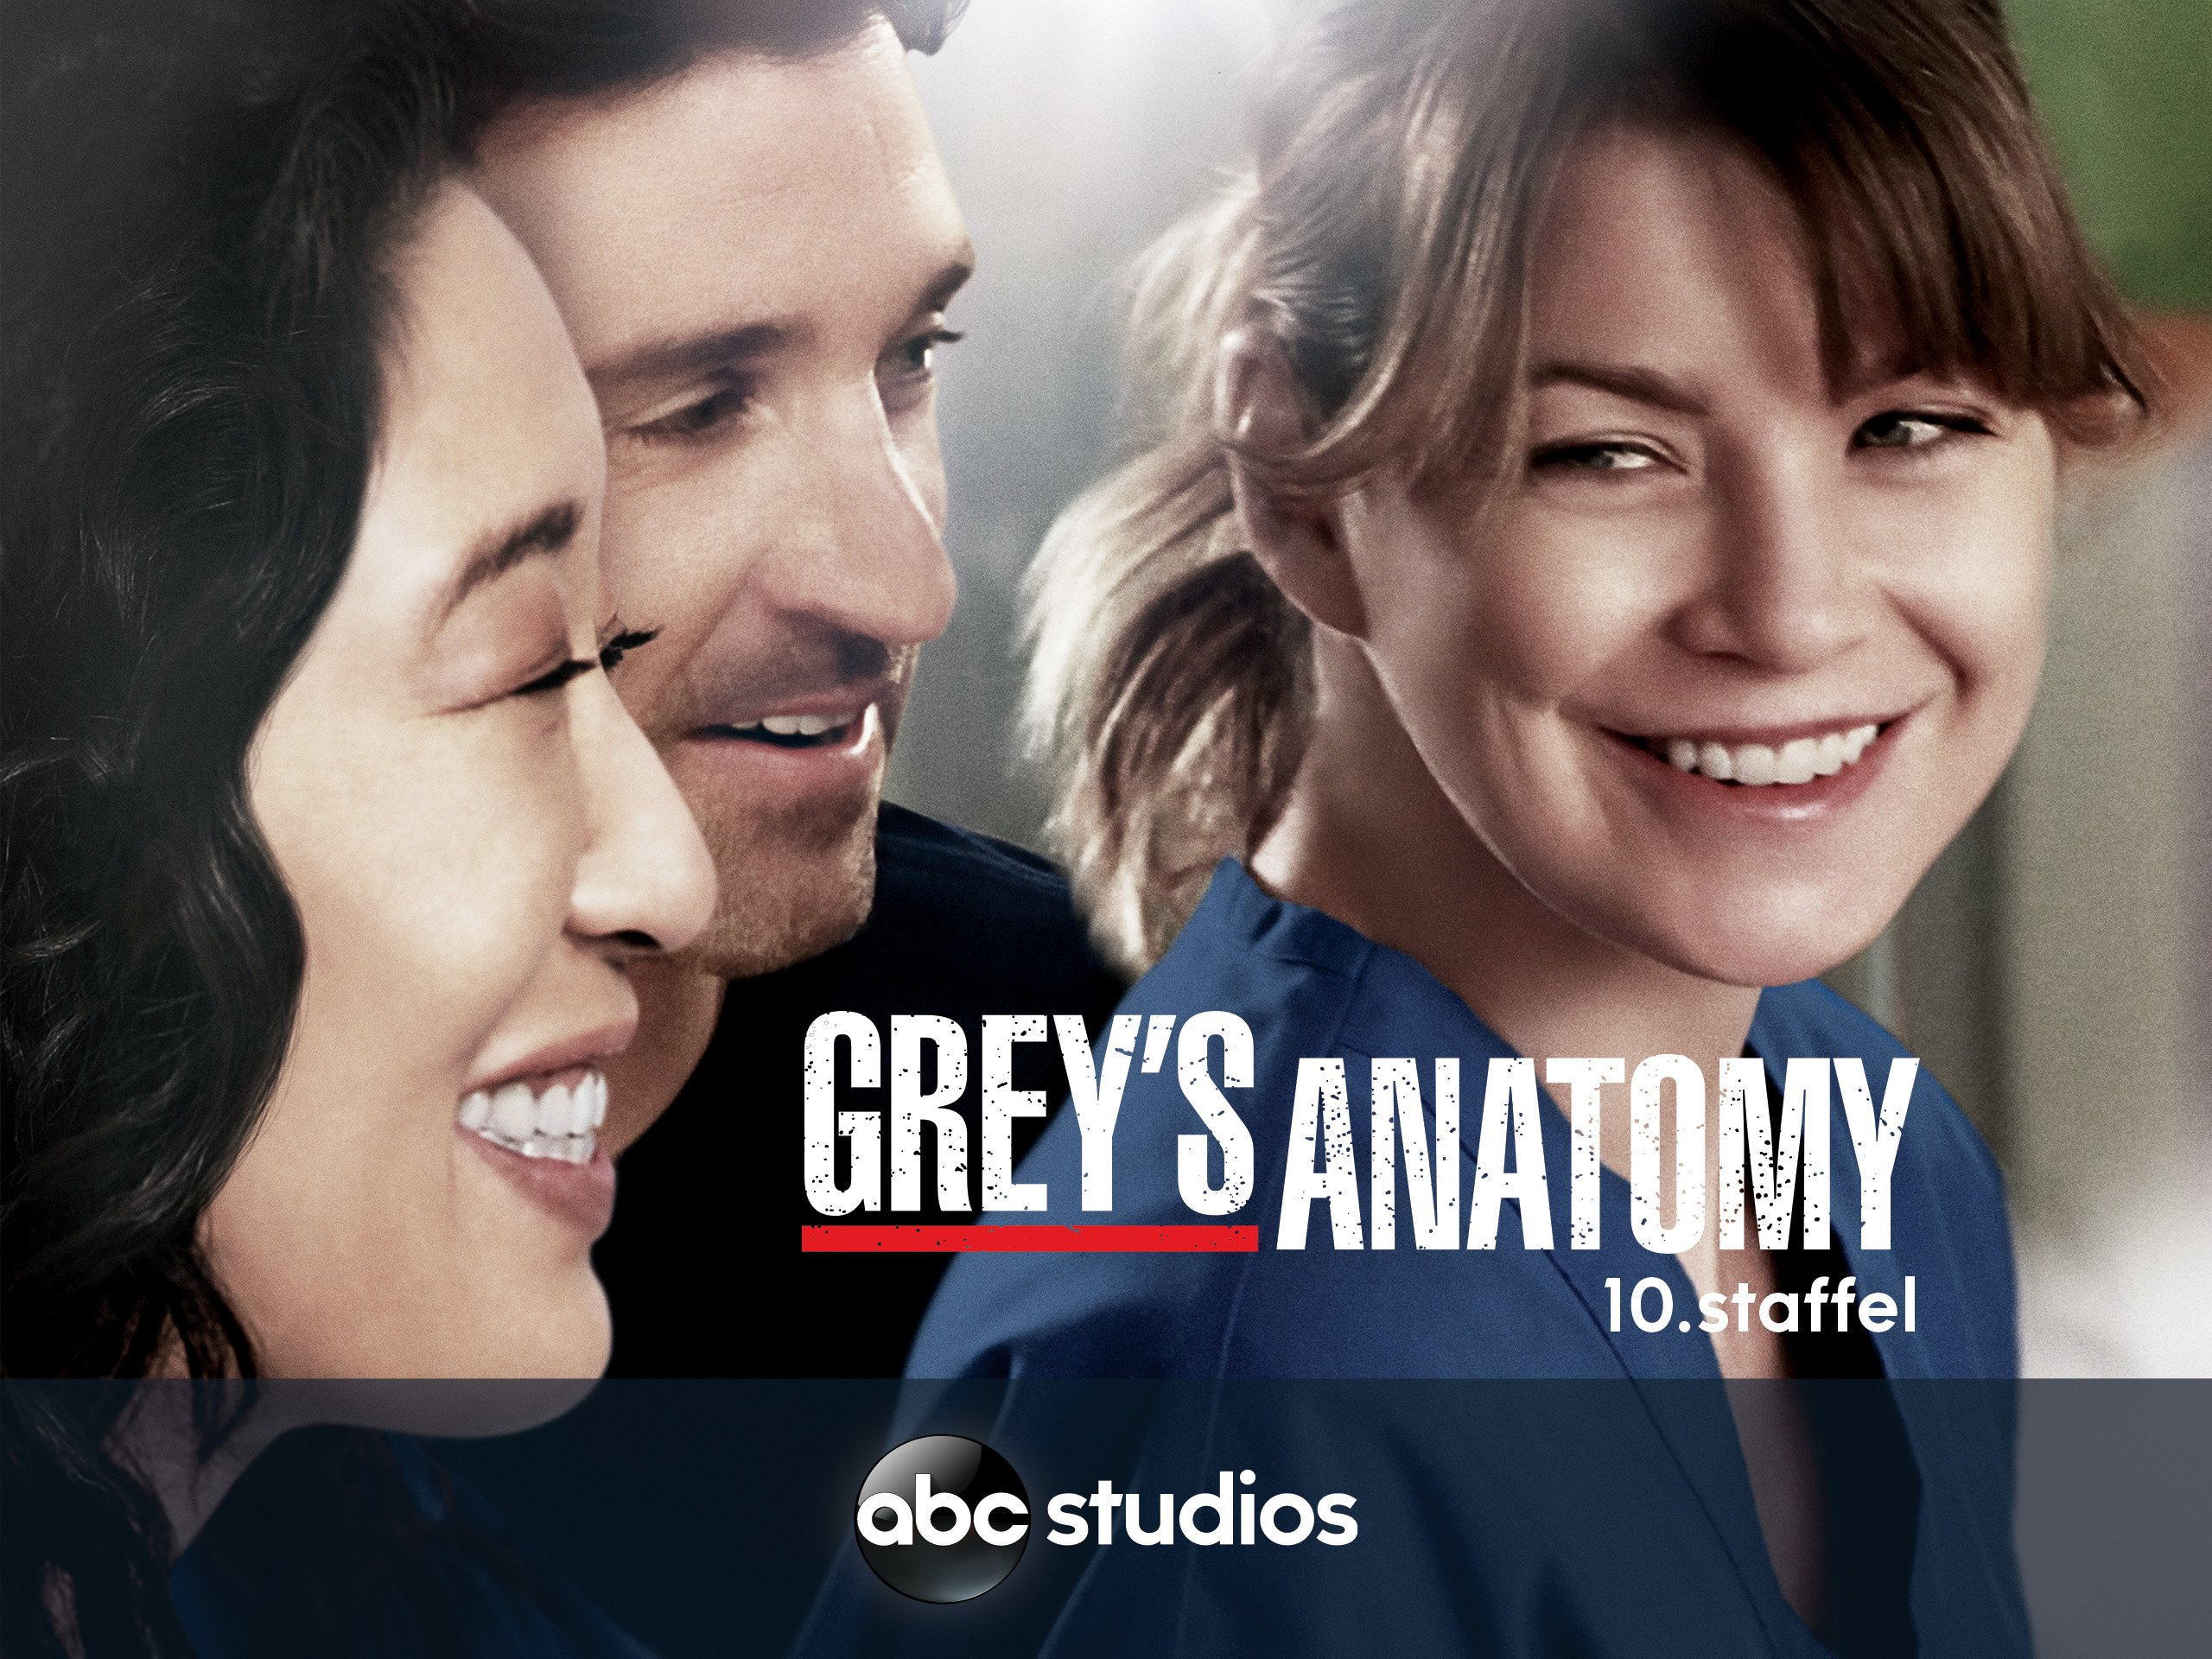 Amazon.de: Grey\'s Anatomy - Season 10 [OmU] ansehen | Prime Video